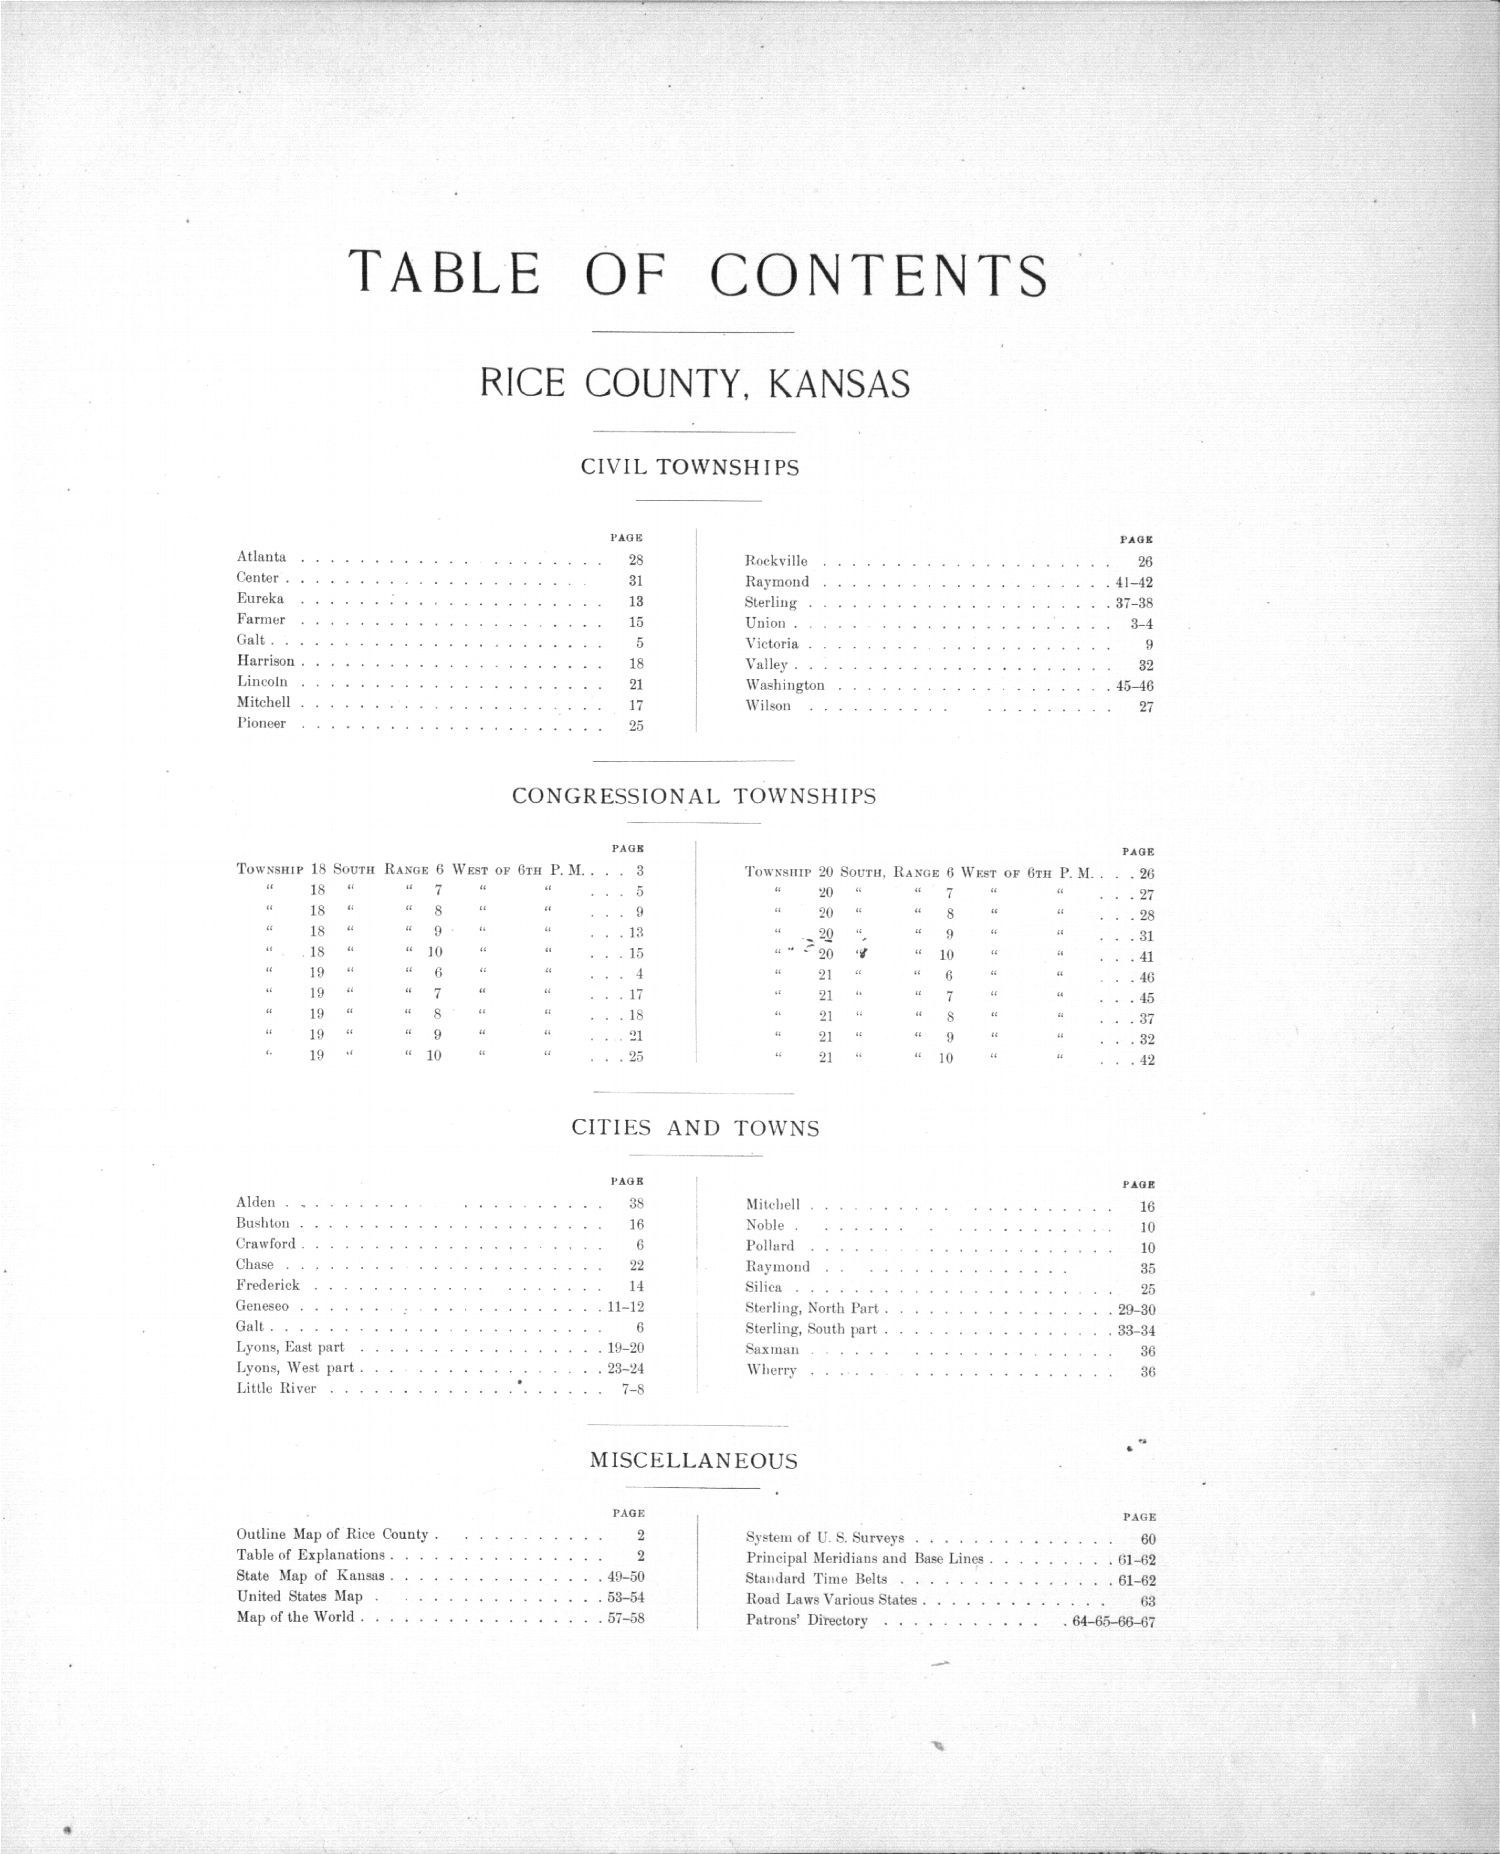 Plat book of Rice County, Kansas - Table of Contents